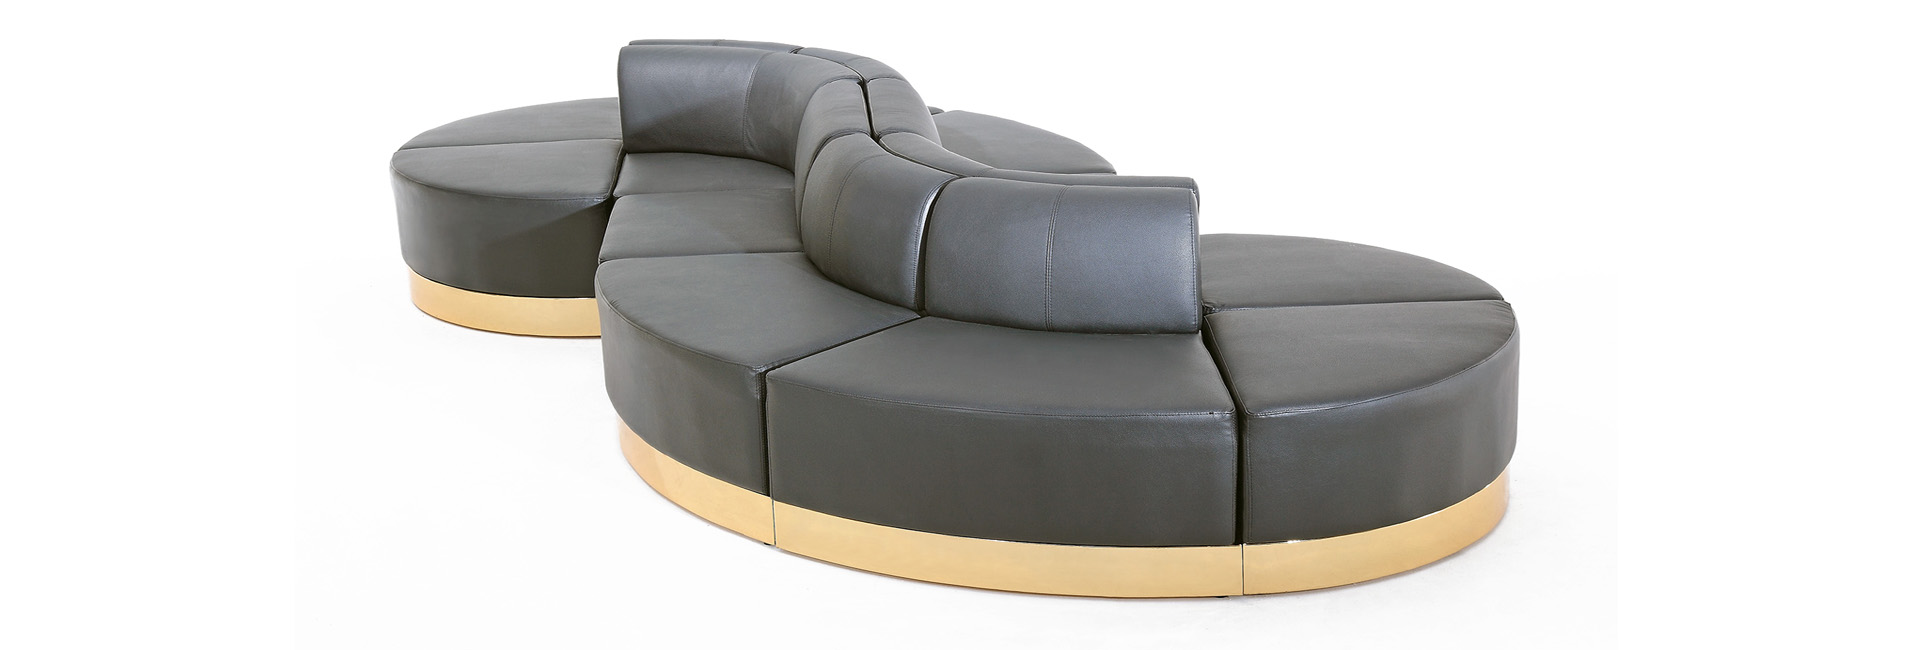 Collection of modular lounge furniture